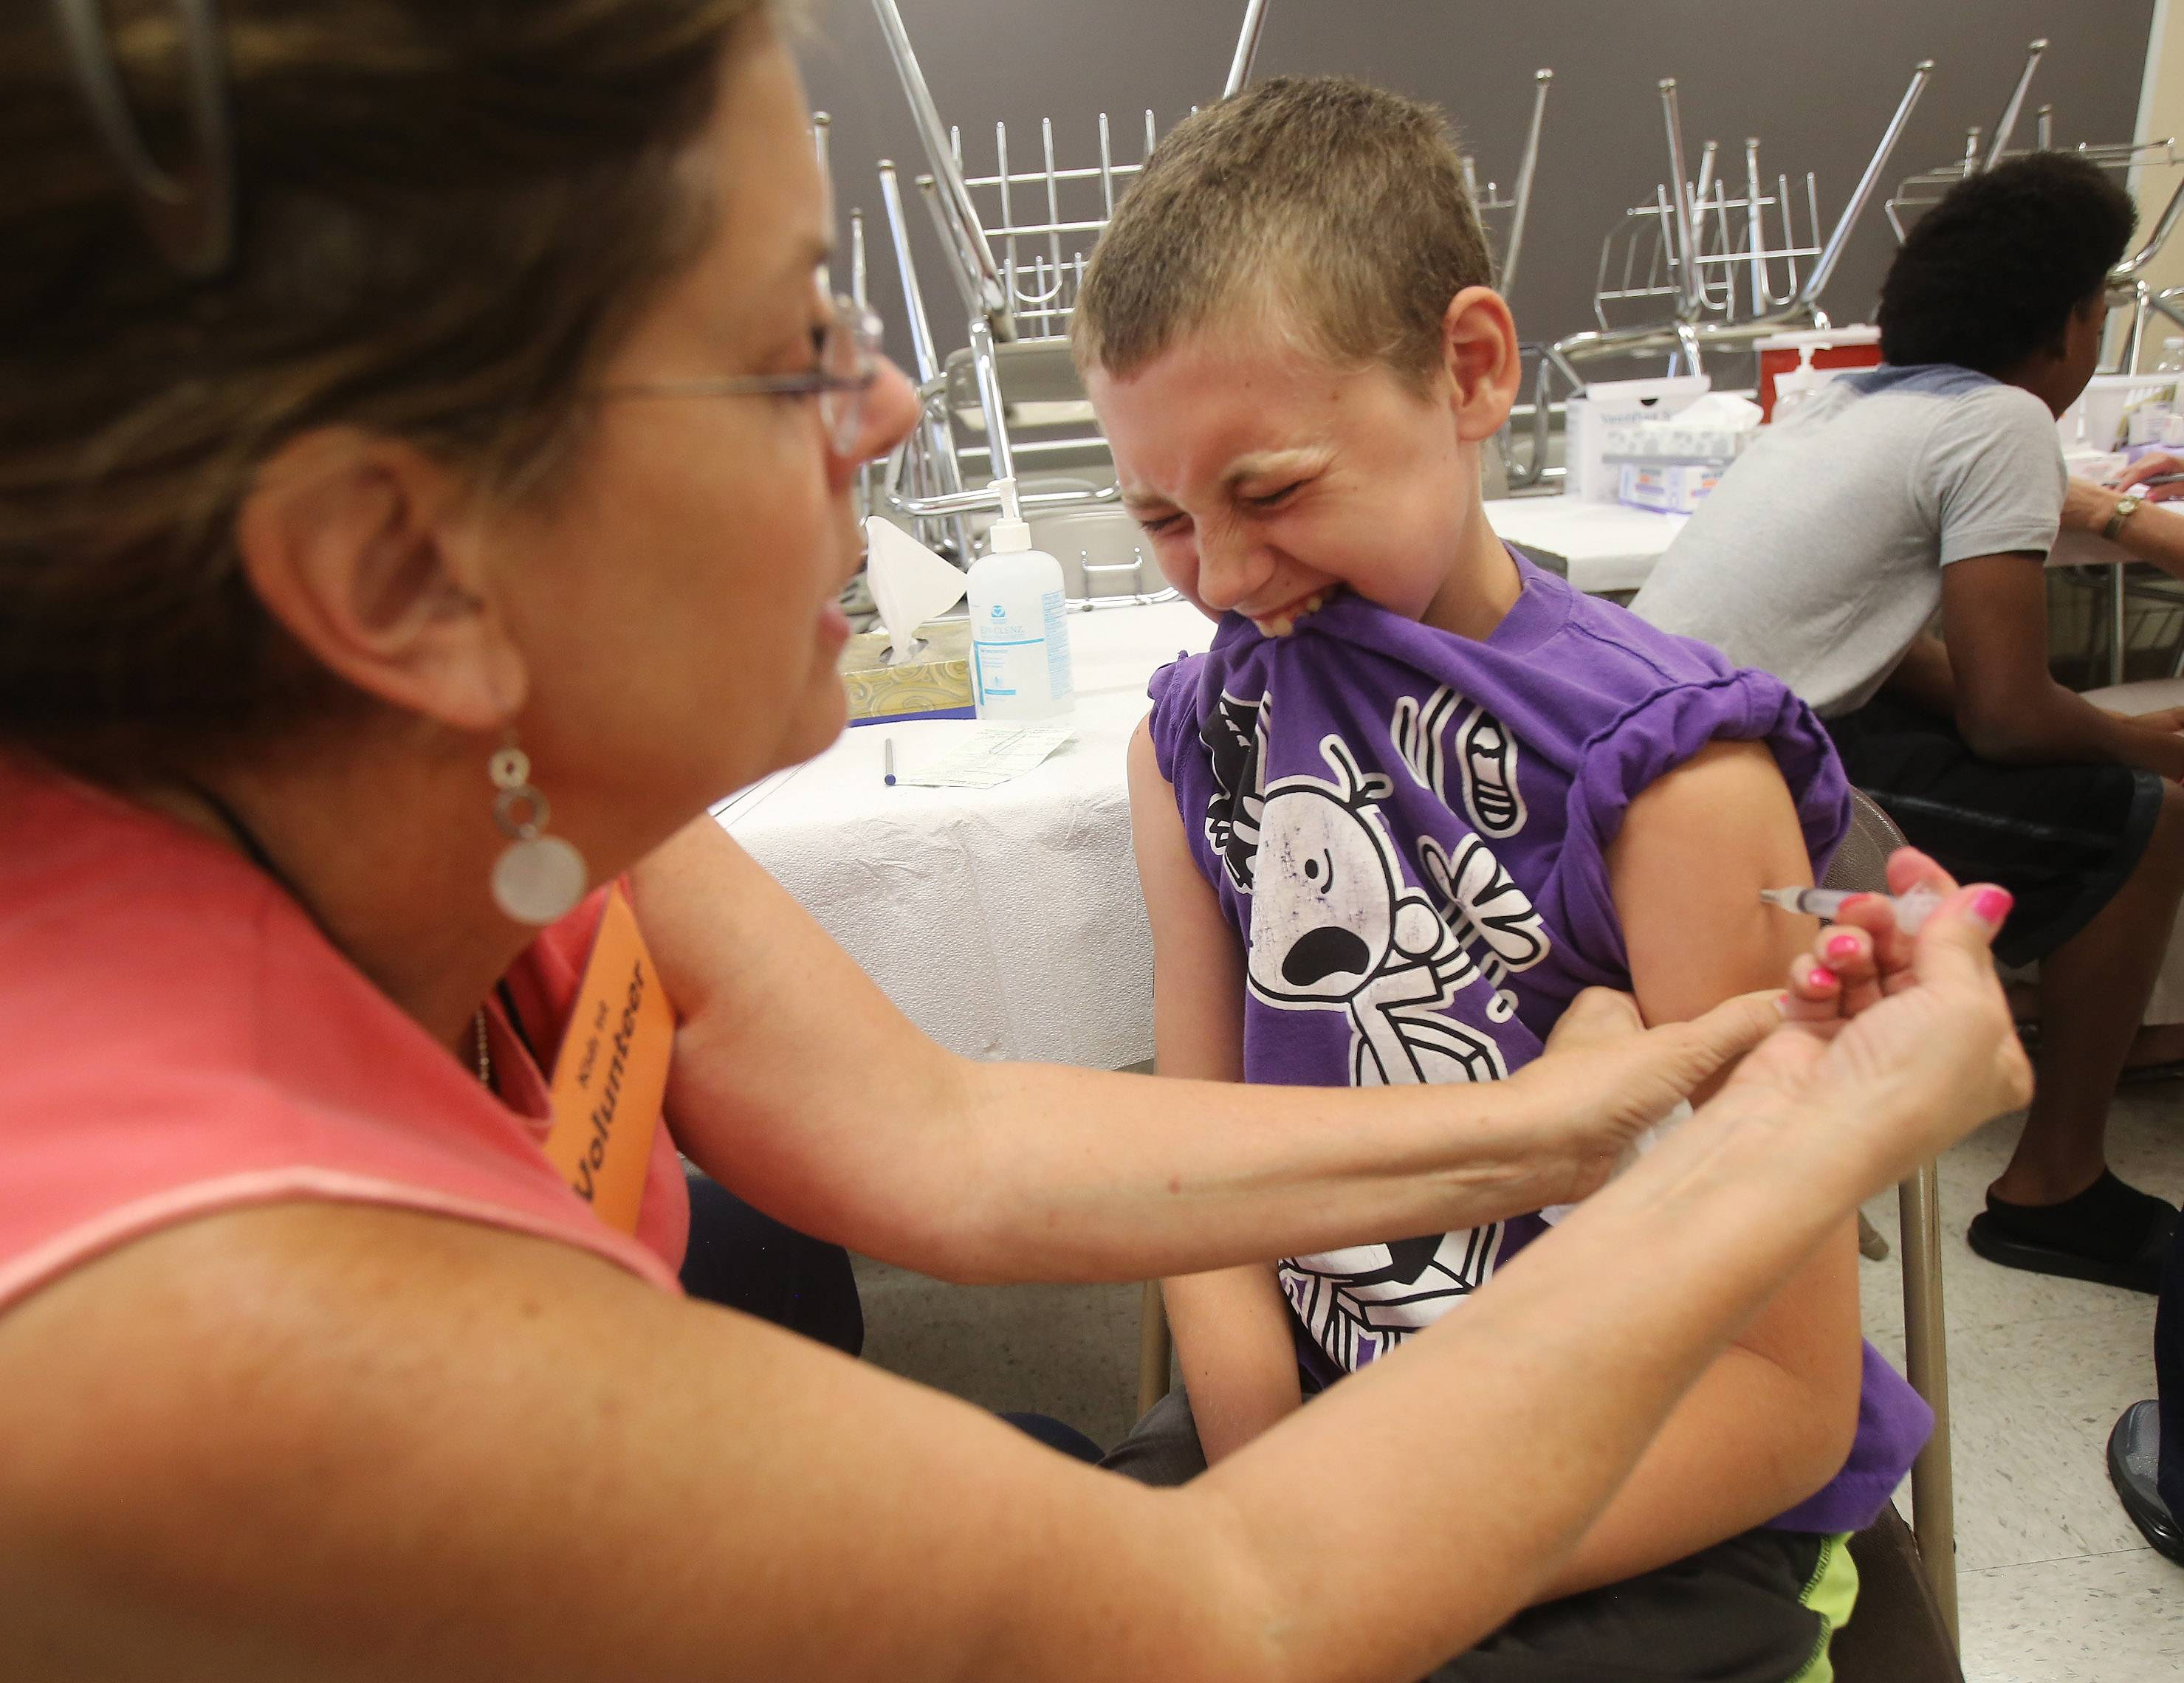 Gavyn Baker, 11, of Wauconda, receives an immunization Wednesday during the final Kids 1st Health Fair in Waukegan. Organizers are ending the program after 21 years.